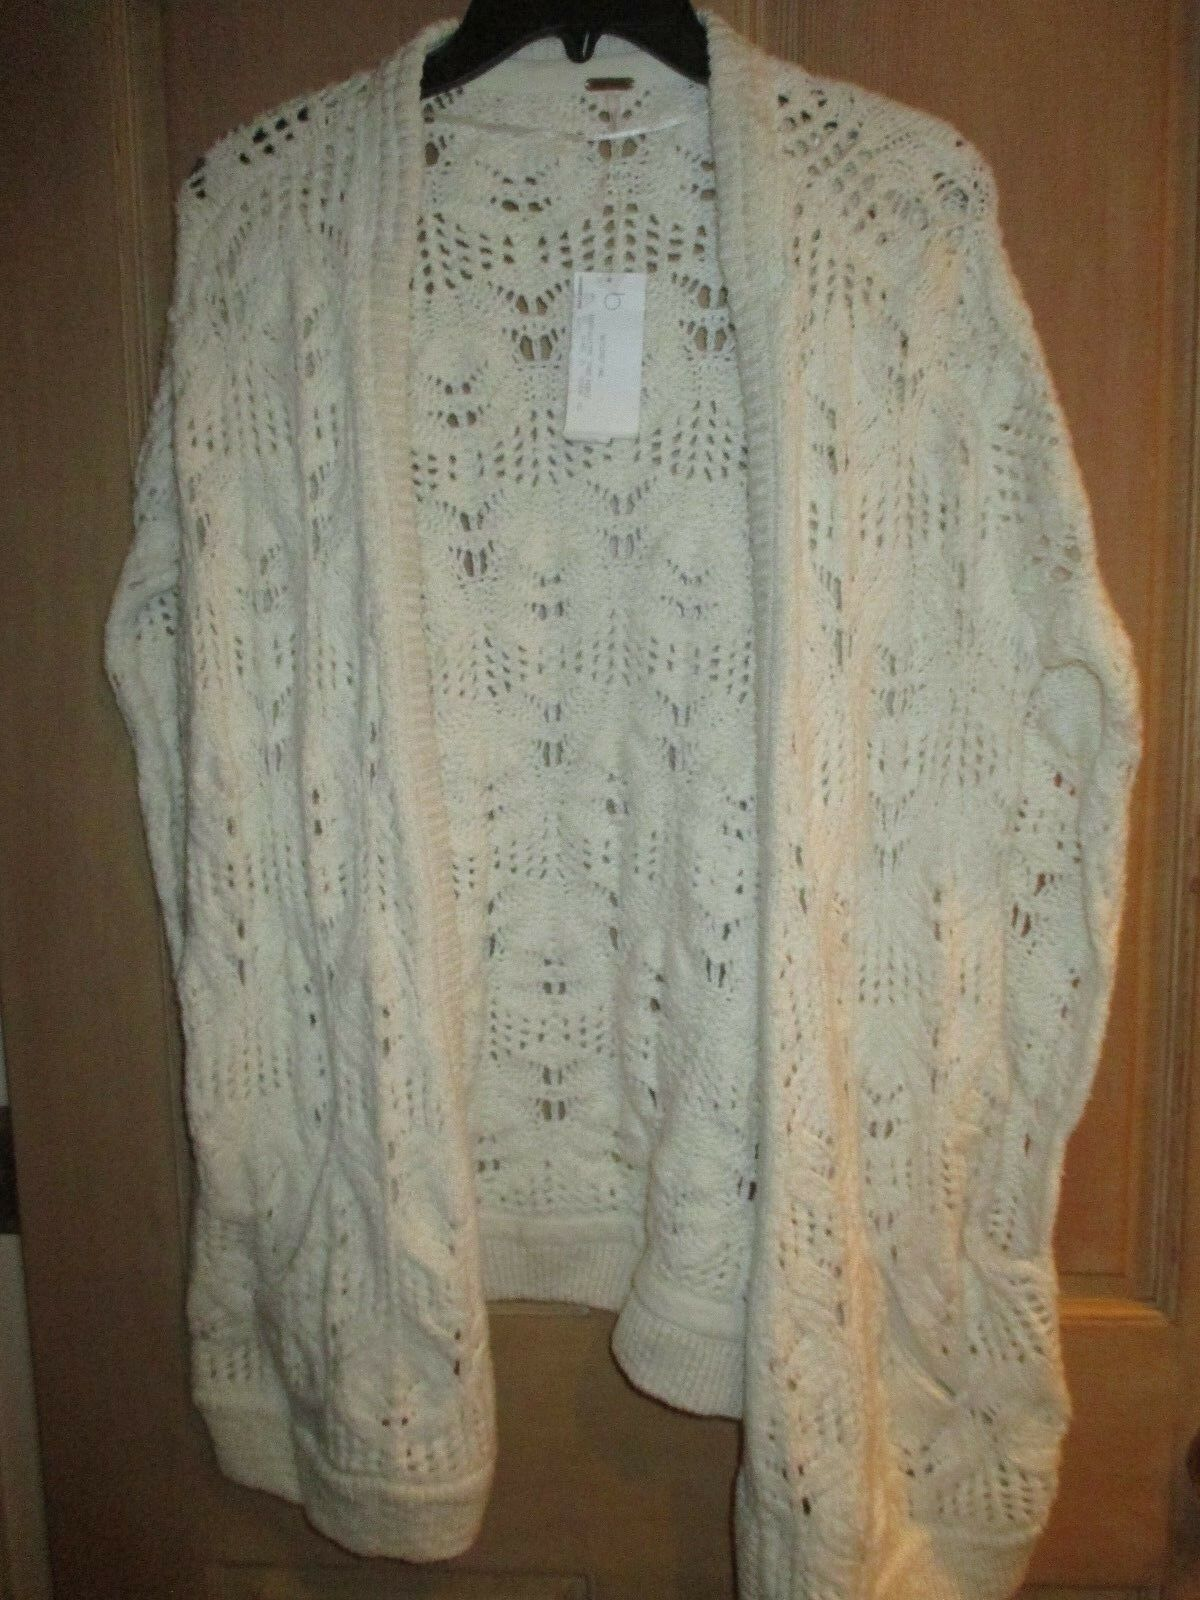 NEW✿ Free People M Cardigan SWEATER SHIRT TOP Poncho Vest Ivory Knit